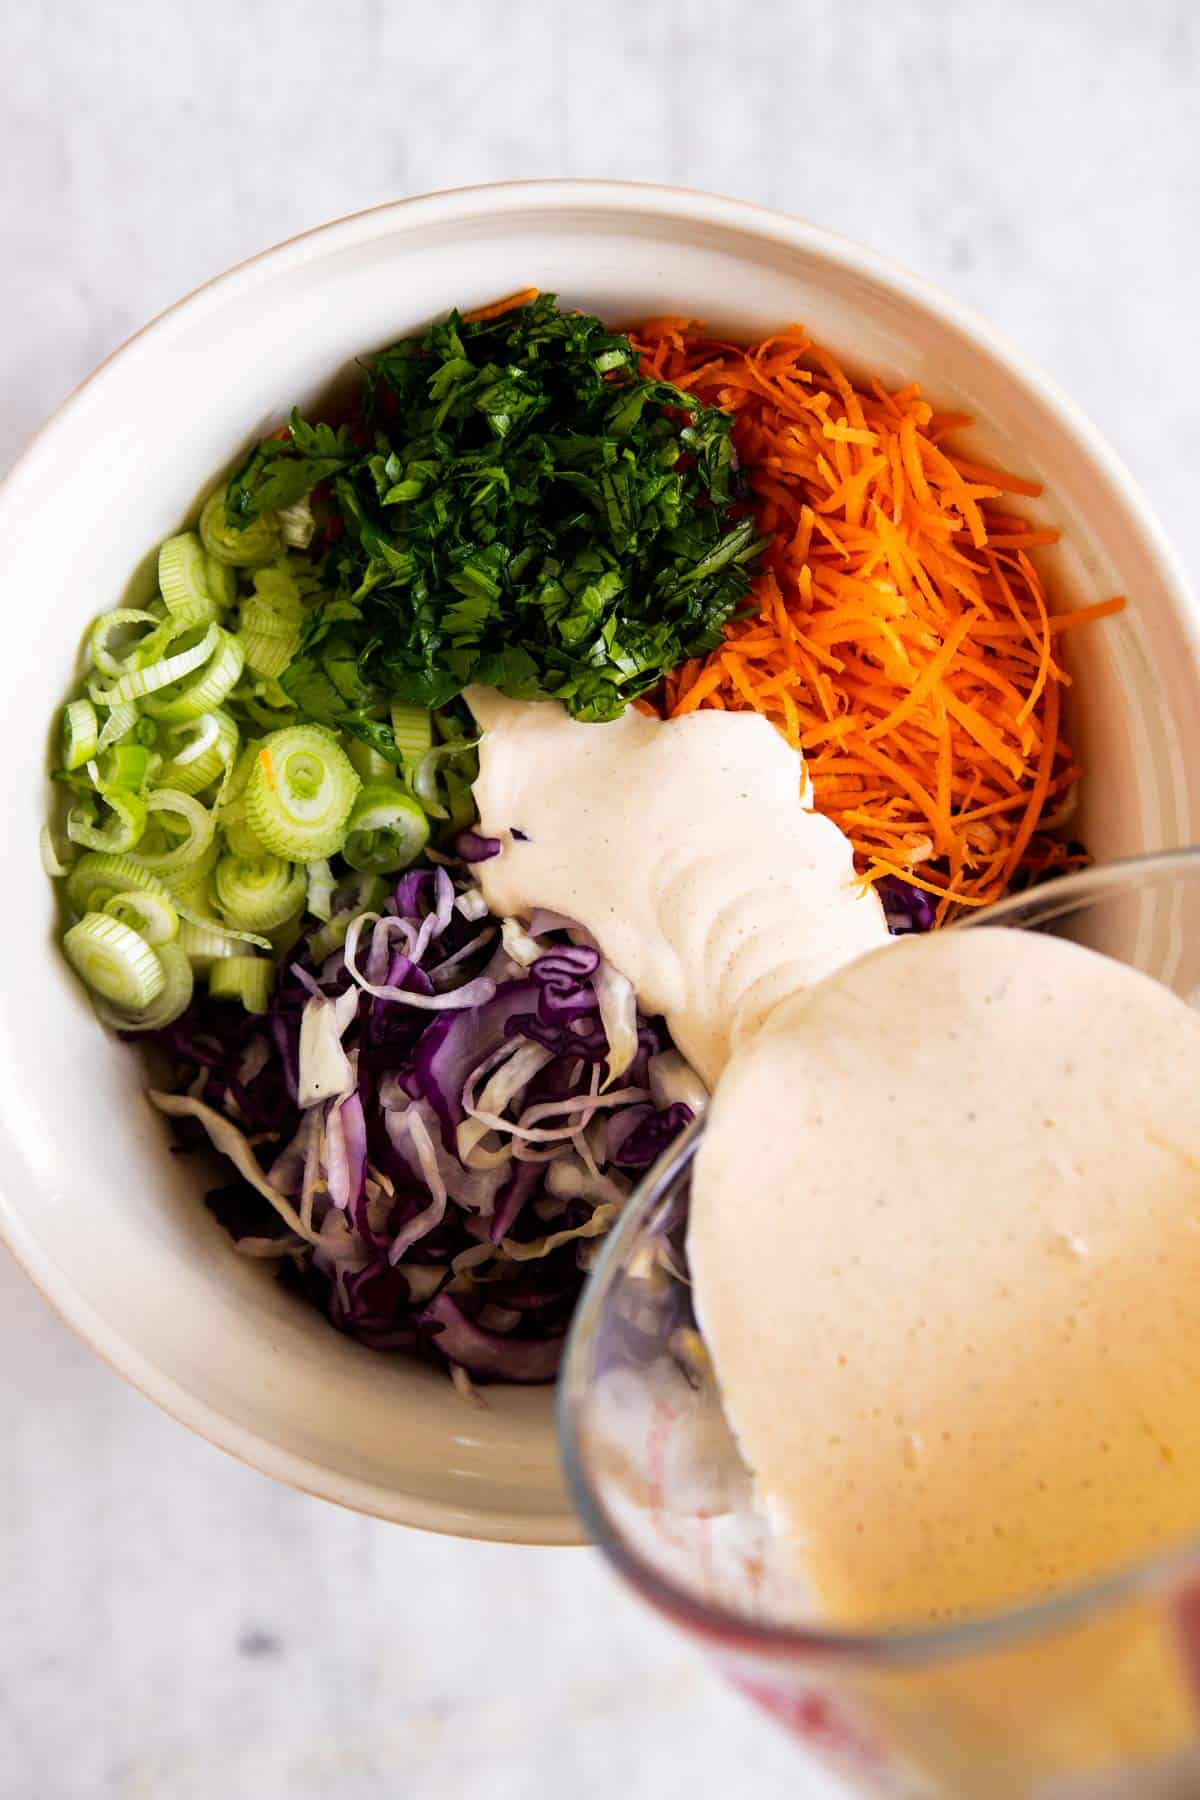 pouring dressing over coleslaw ingredients